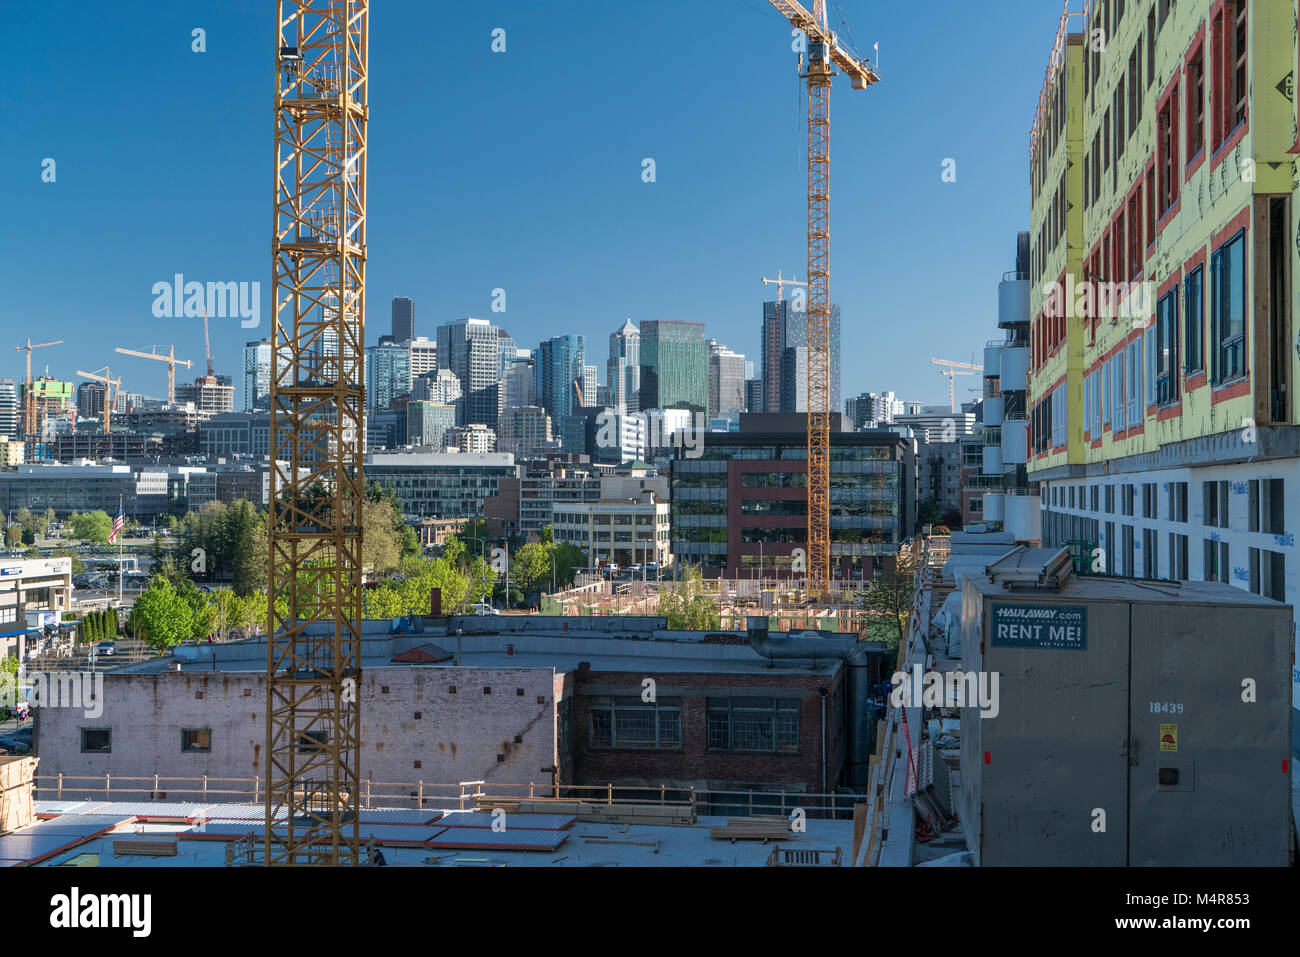 Construction site in South Lake Union, Seattle, Washington, USA - Stock Image